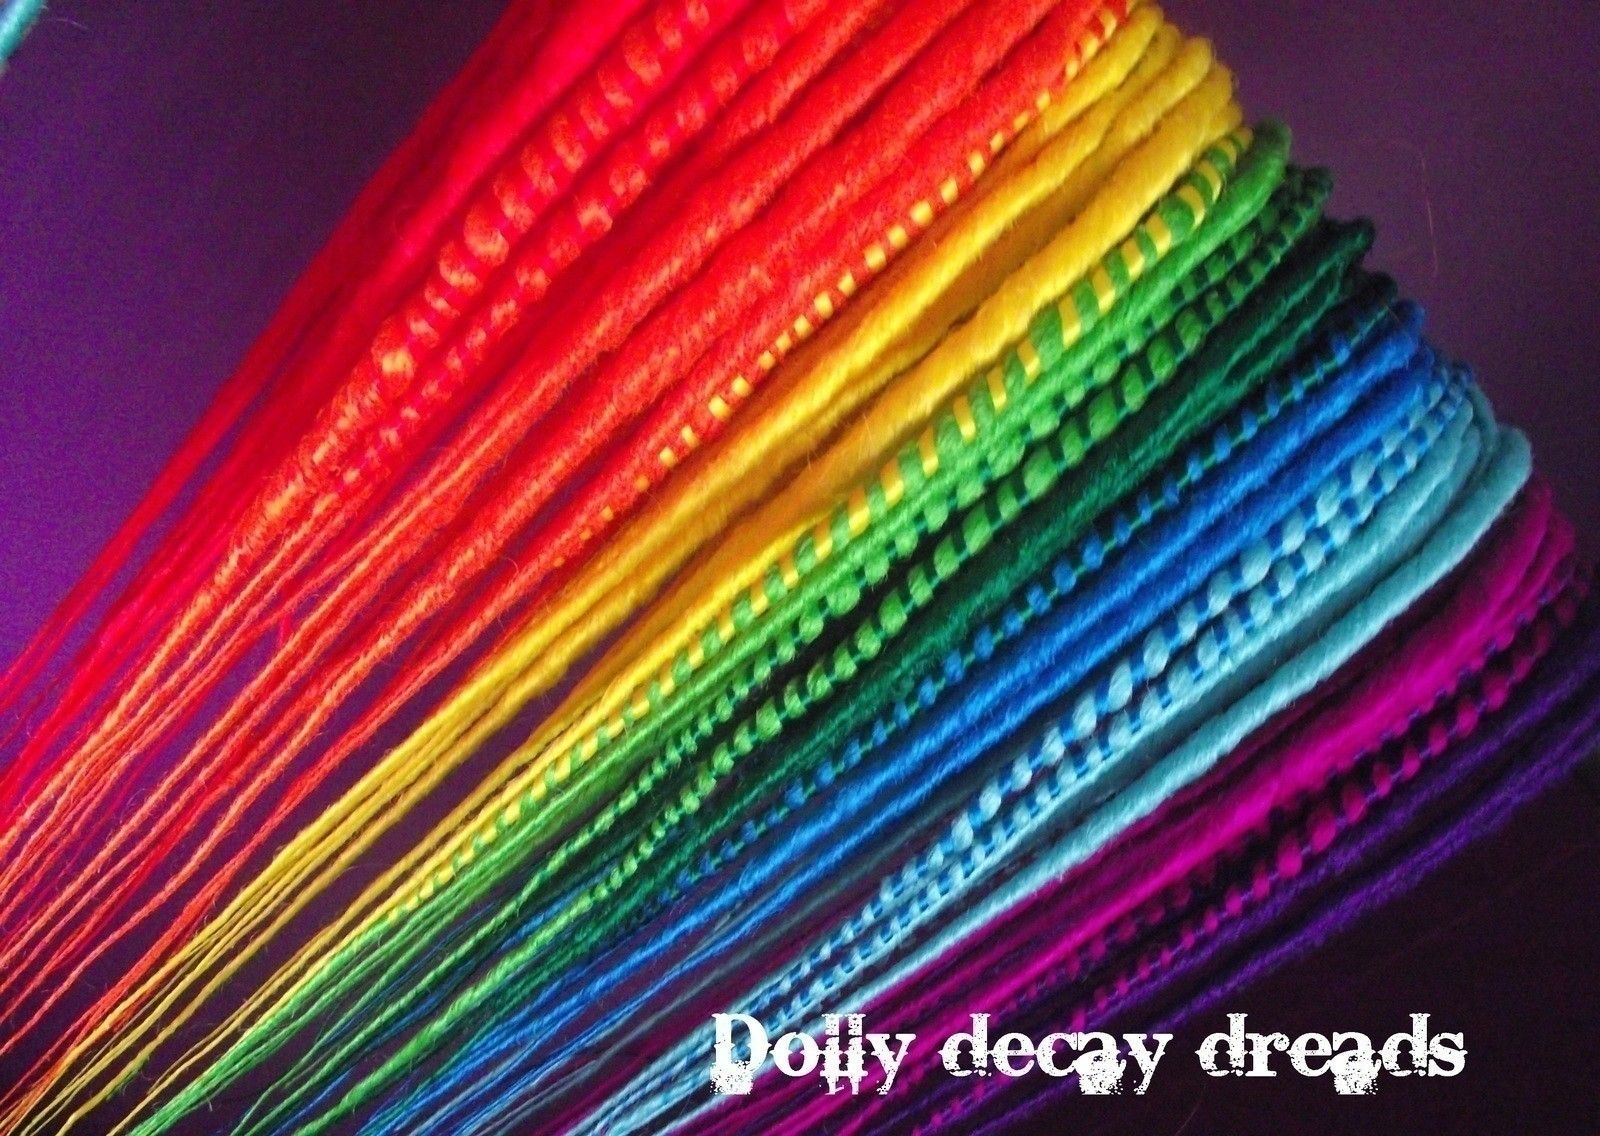 Super awesome fake dreads that you can take in and out and make ANY color you want! .  Free tutorial with pictures on how to make a dreadlock / fall in 10 steps using scissors, hair, and brush. How To posted by Spookymeow. Difficulty: Easy. Cost: 3/5.